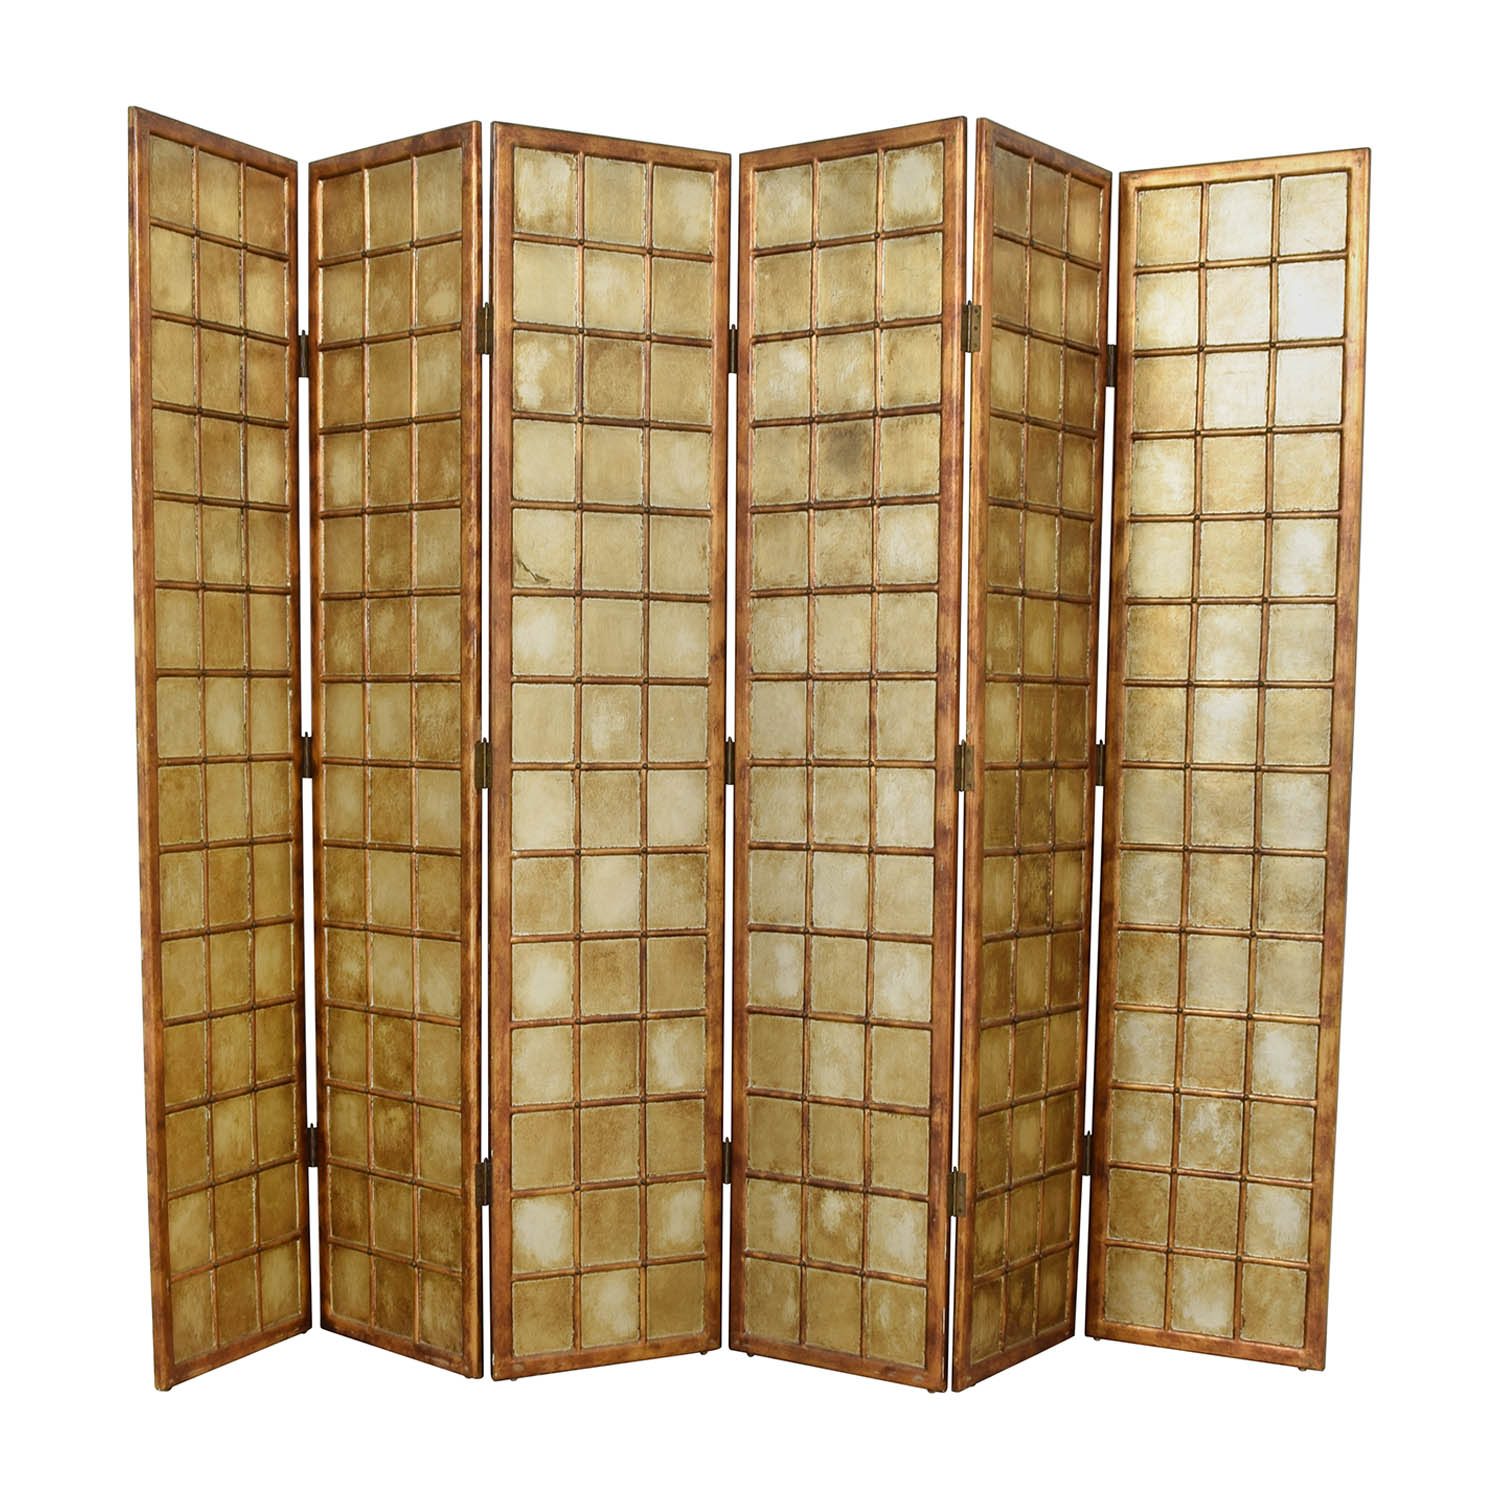 Bloomingdale's Six Panel Decorative Screen / Decor